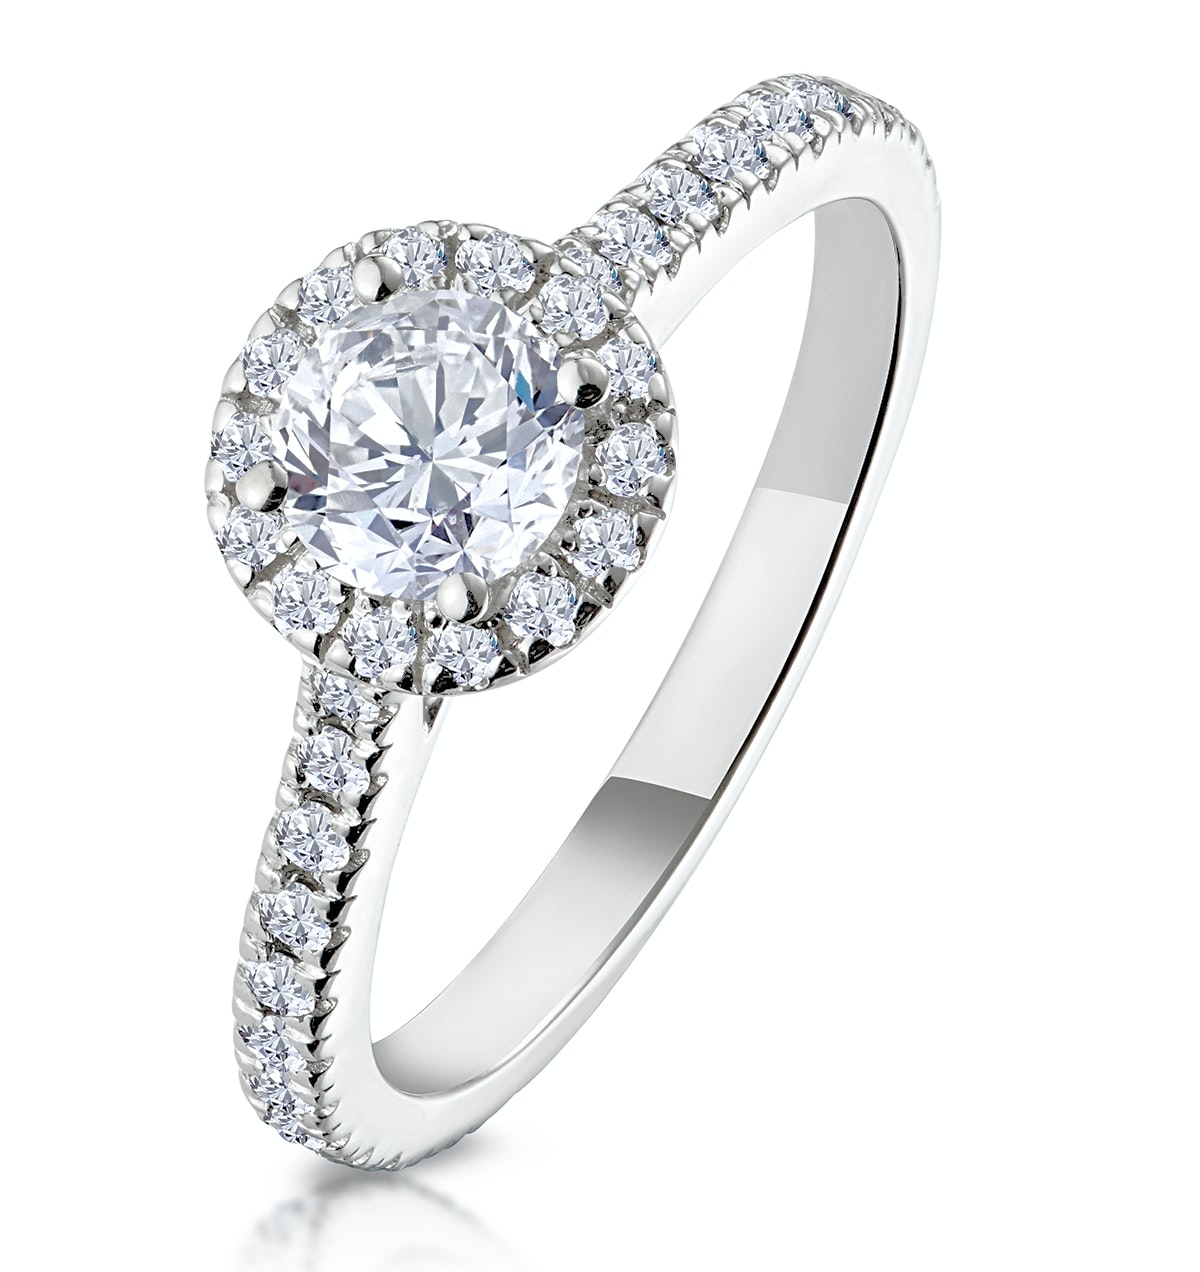 Reina GIA Diamond Halo Engagement Ring in Platinum 1.10ct G/SI1